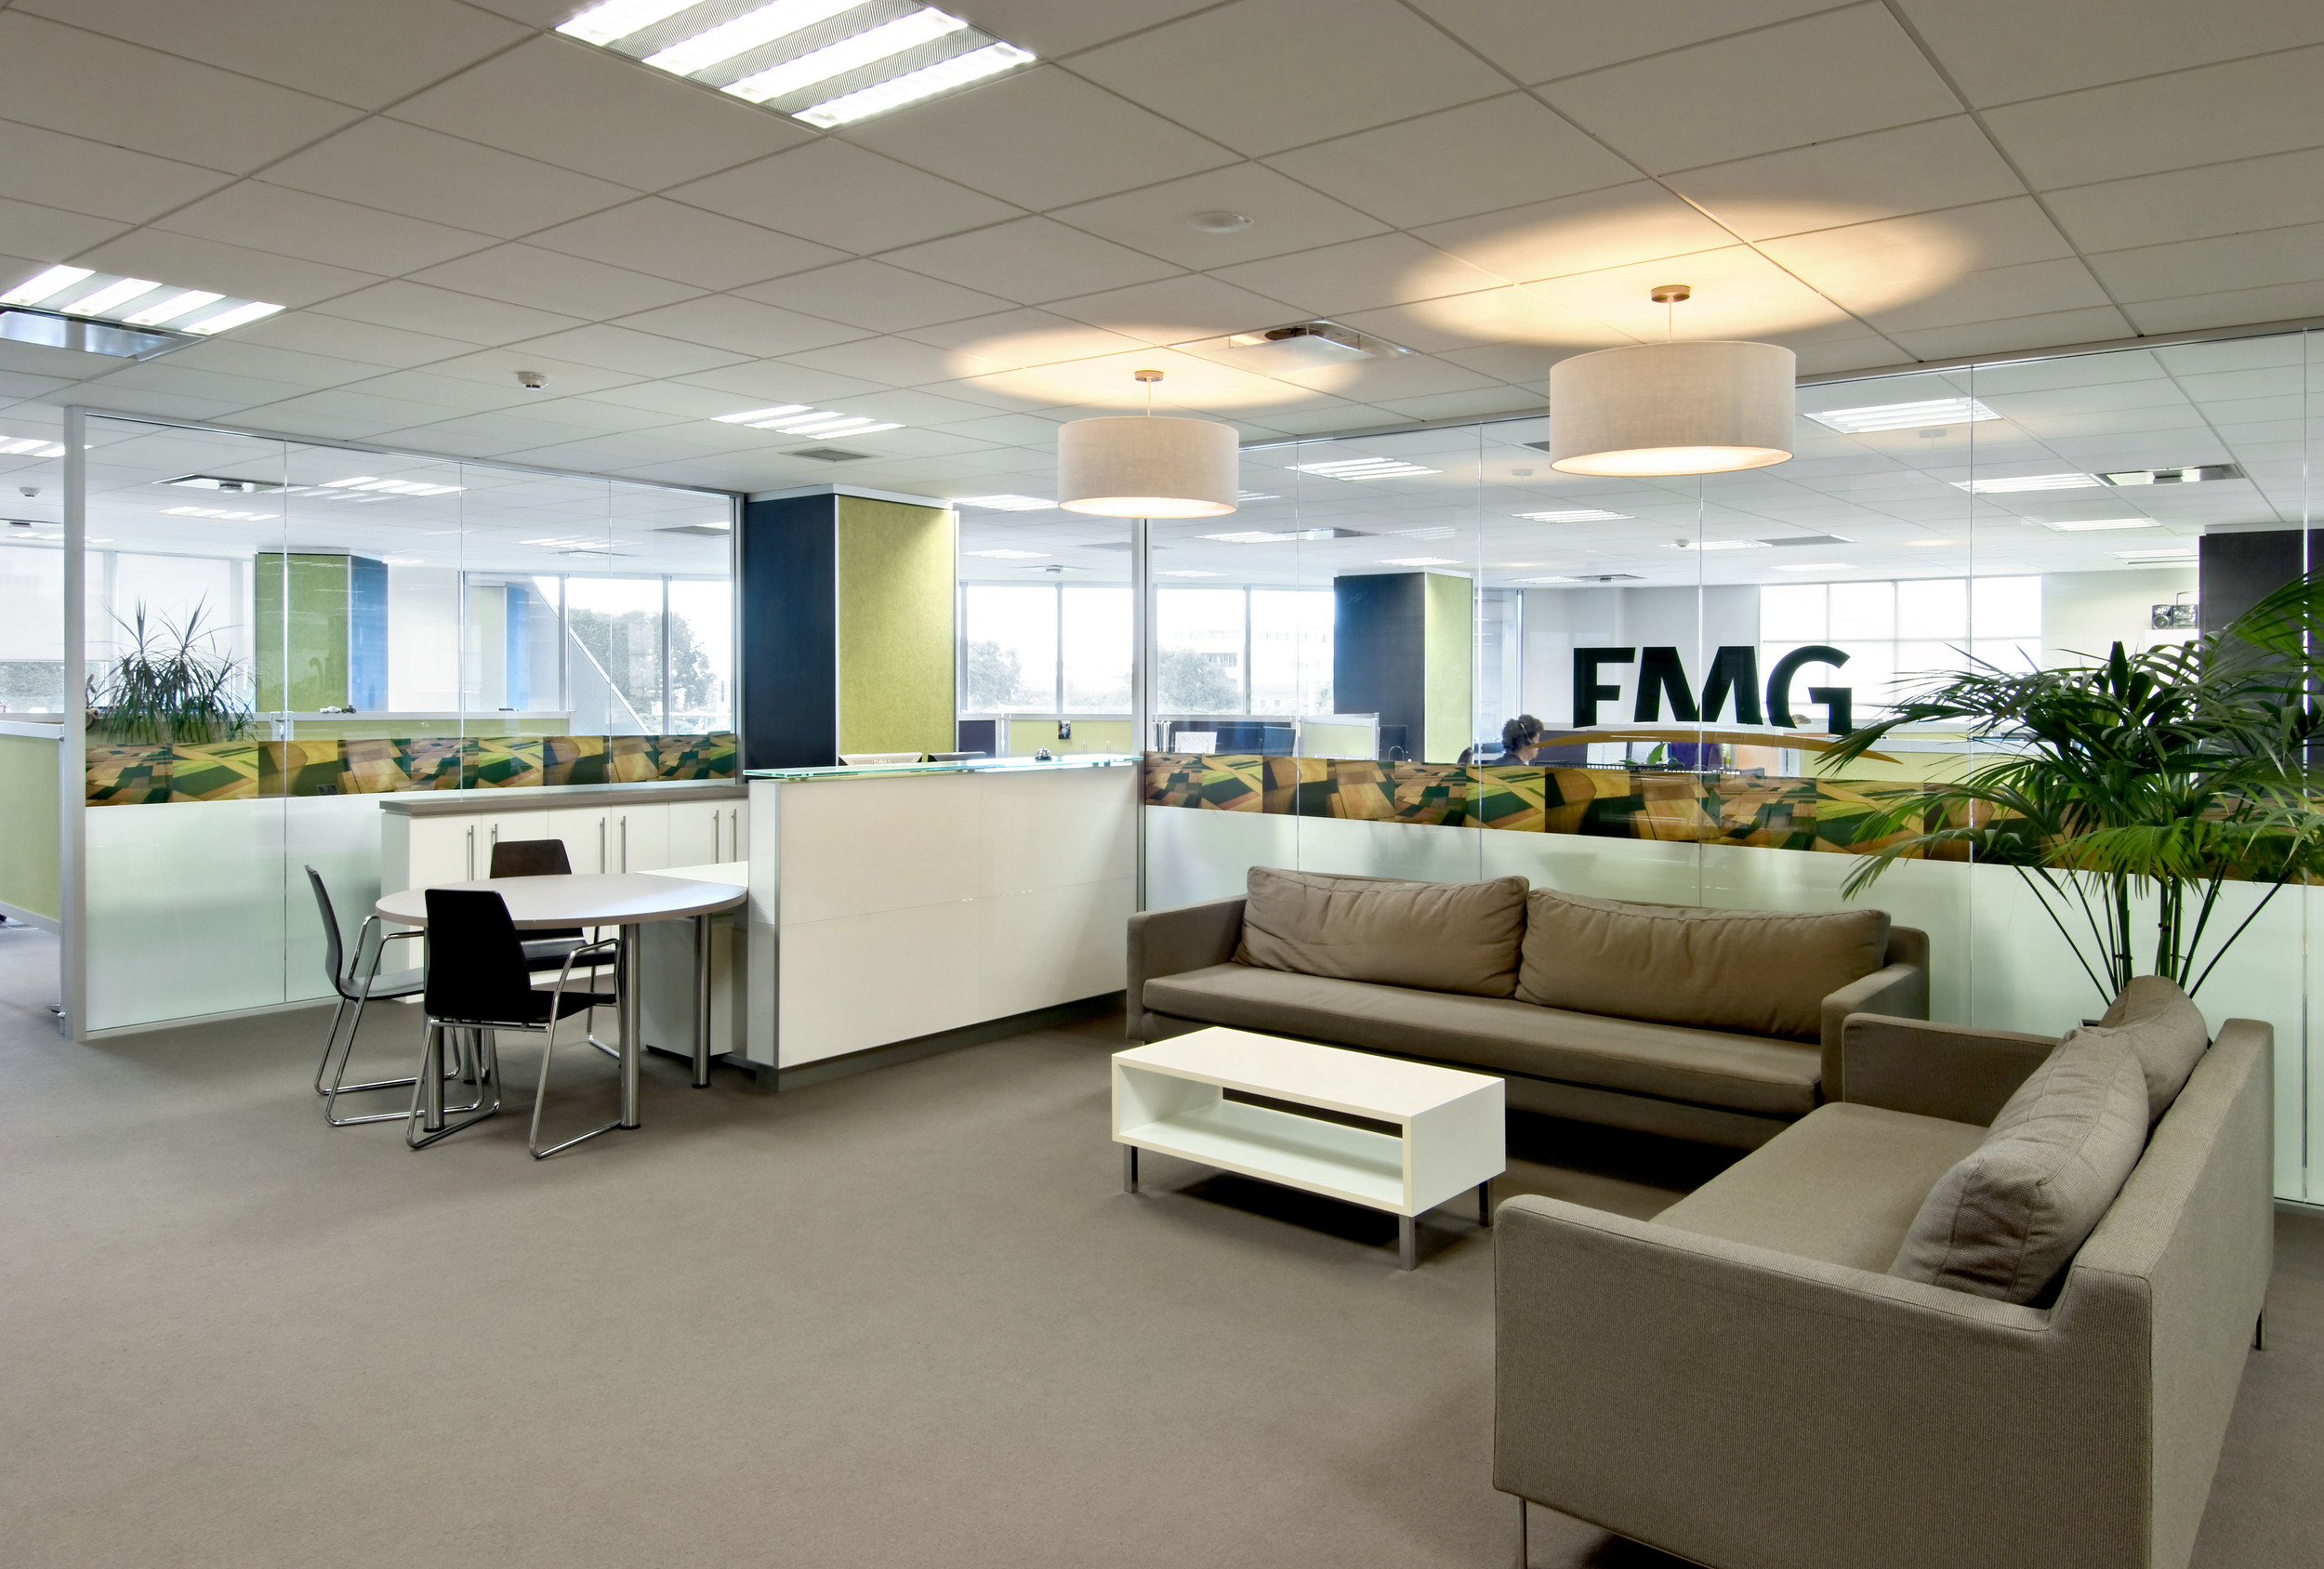 FMG     Headquarters Fitout   Following on from FMG's Corporate Office in Wellington, S&T were asked to refurbish their Head Office in Palmerston North where they had been based for a number of years in a building famous for it's 'crystaline' shape. This presented unique challenges but resulted in a polished interior design.